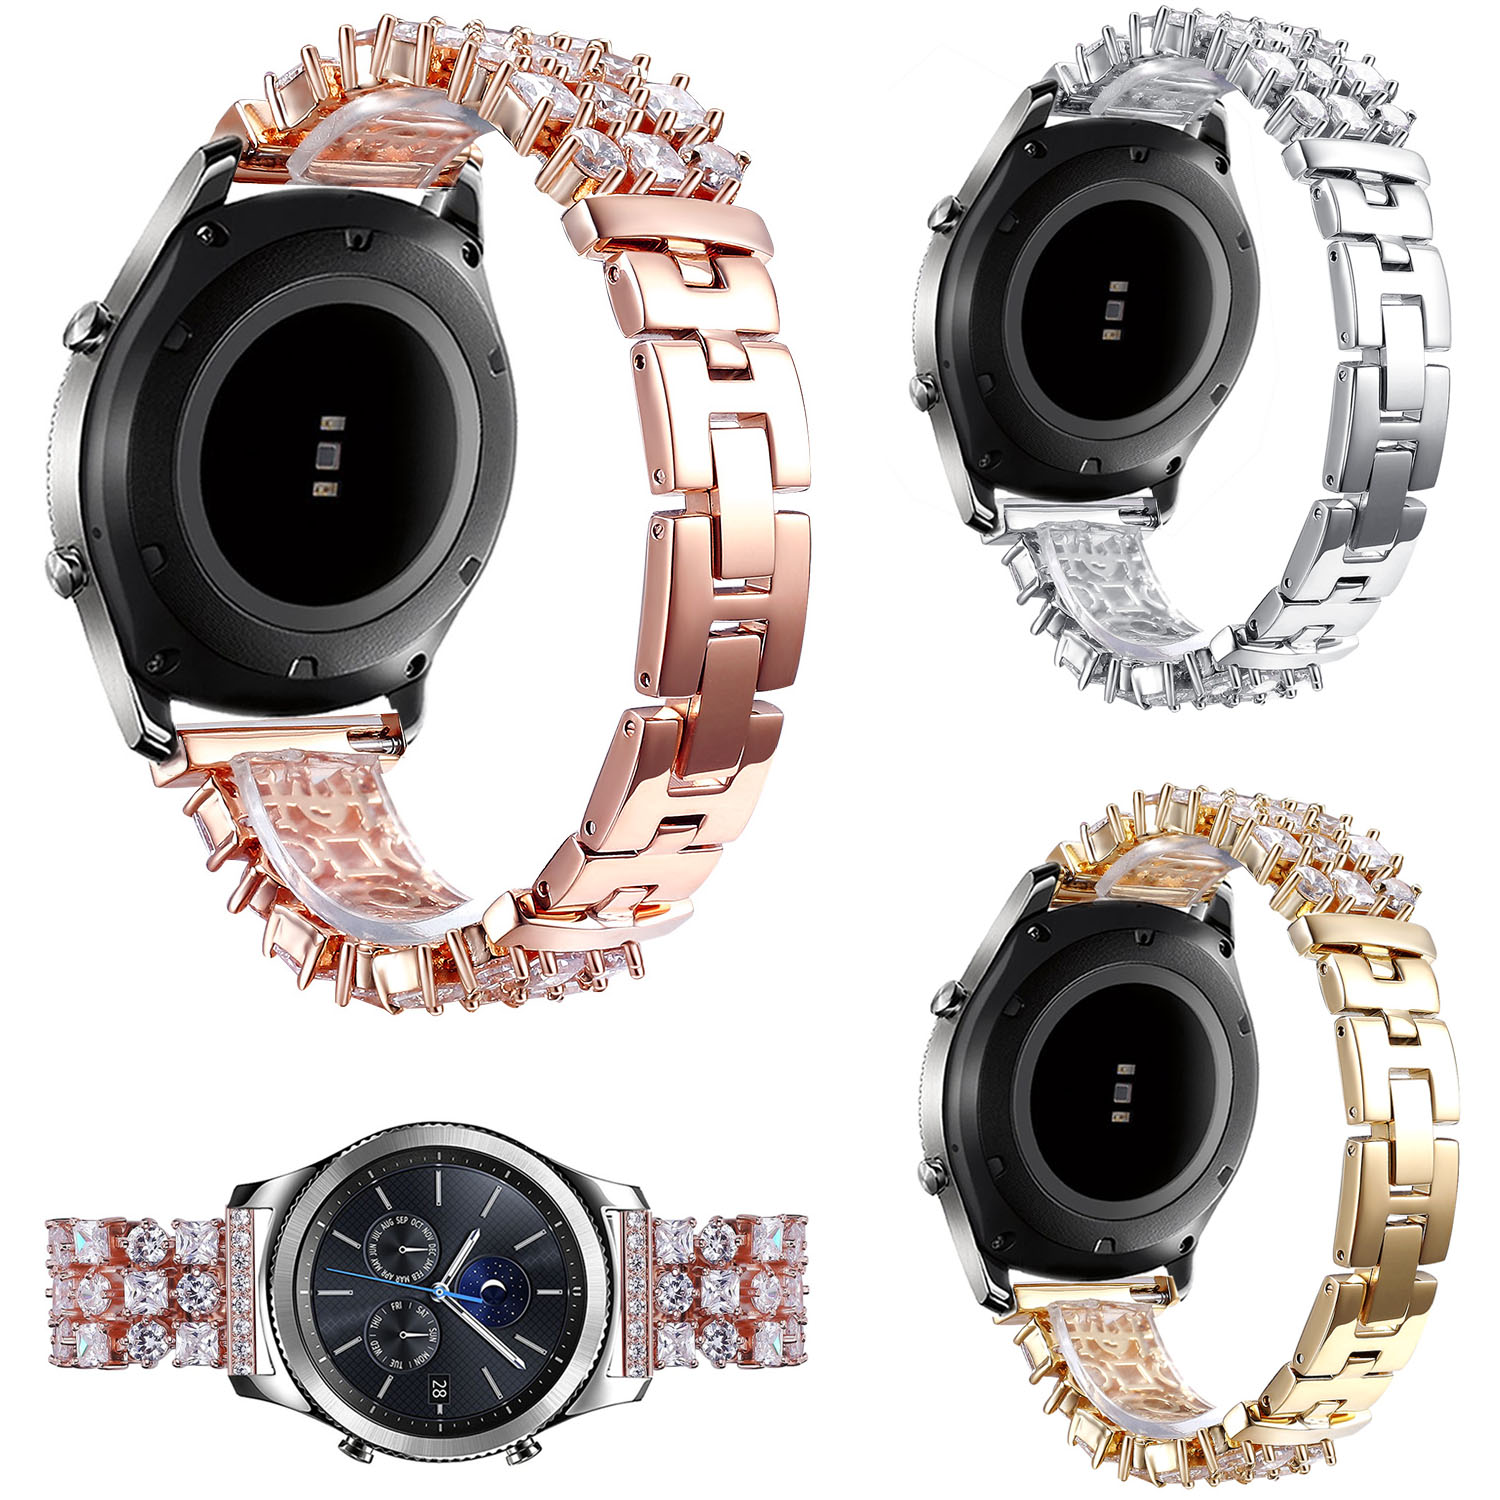 Bling Diamond Strap for Samsung Galaxy Gear S3 Classic Rhinestone Stainless Steel Band for Gear S3 Frontier Bracelet hoco classic stainless steel wrist strap for samsung galaxy gear s3 frontier band for samsung gear s3 classic watchband s3 strap